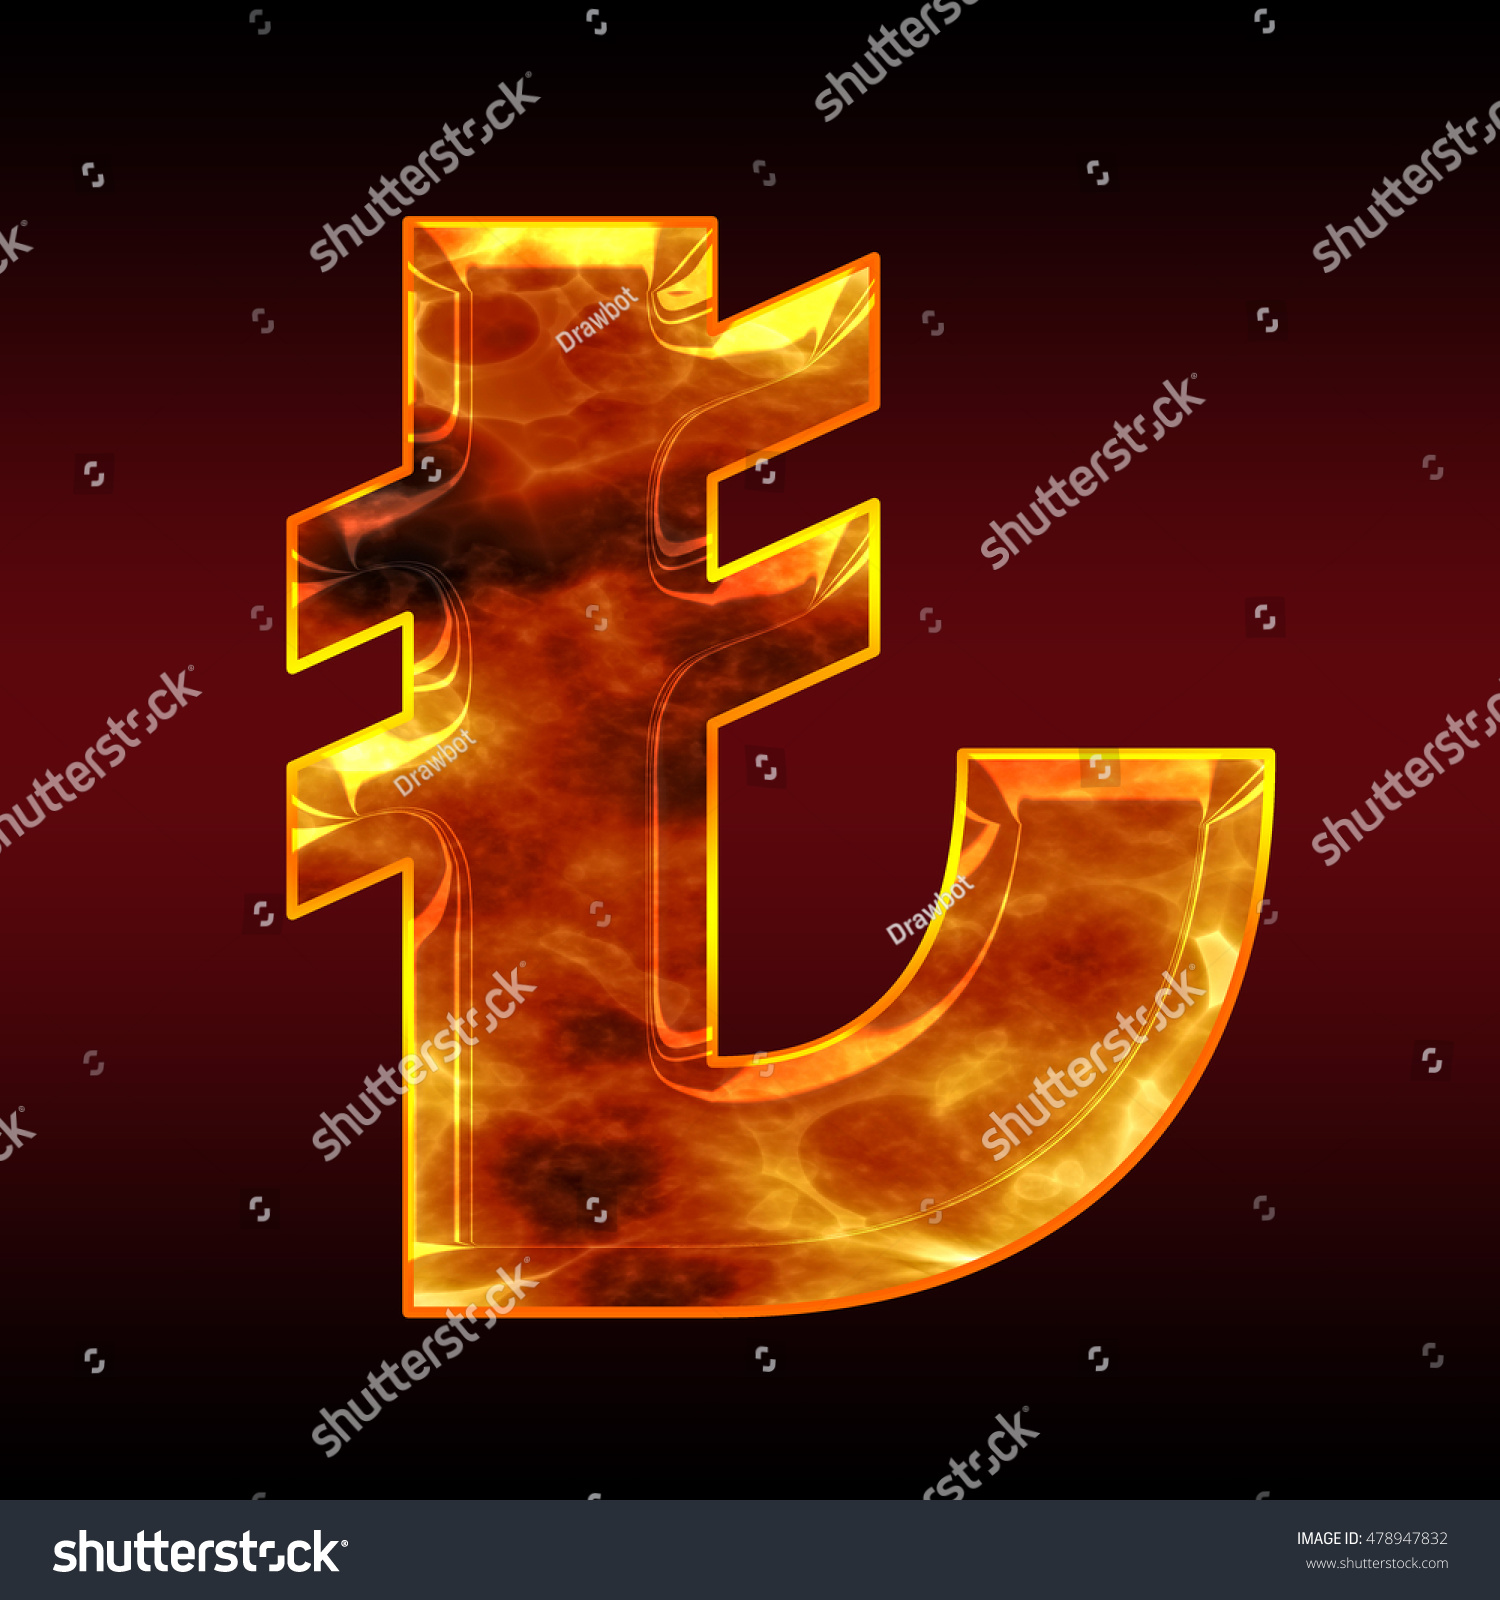 Turkish lira currency symbol gallery symbol and sign ideas colorful 3d font isolated on dark stock illustration 478947832 colorful 3d font isolated on dark background buycottarizona